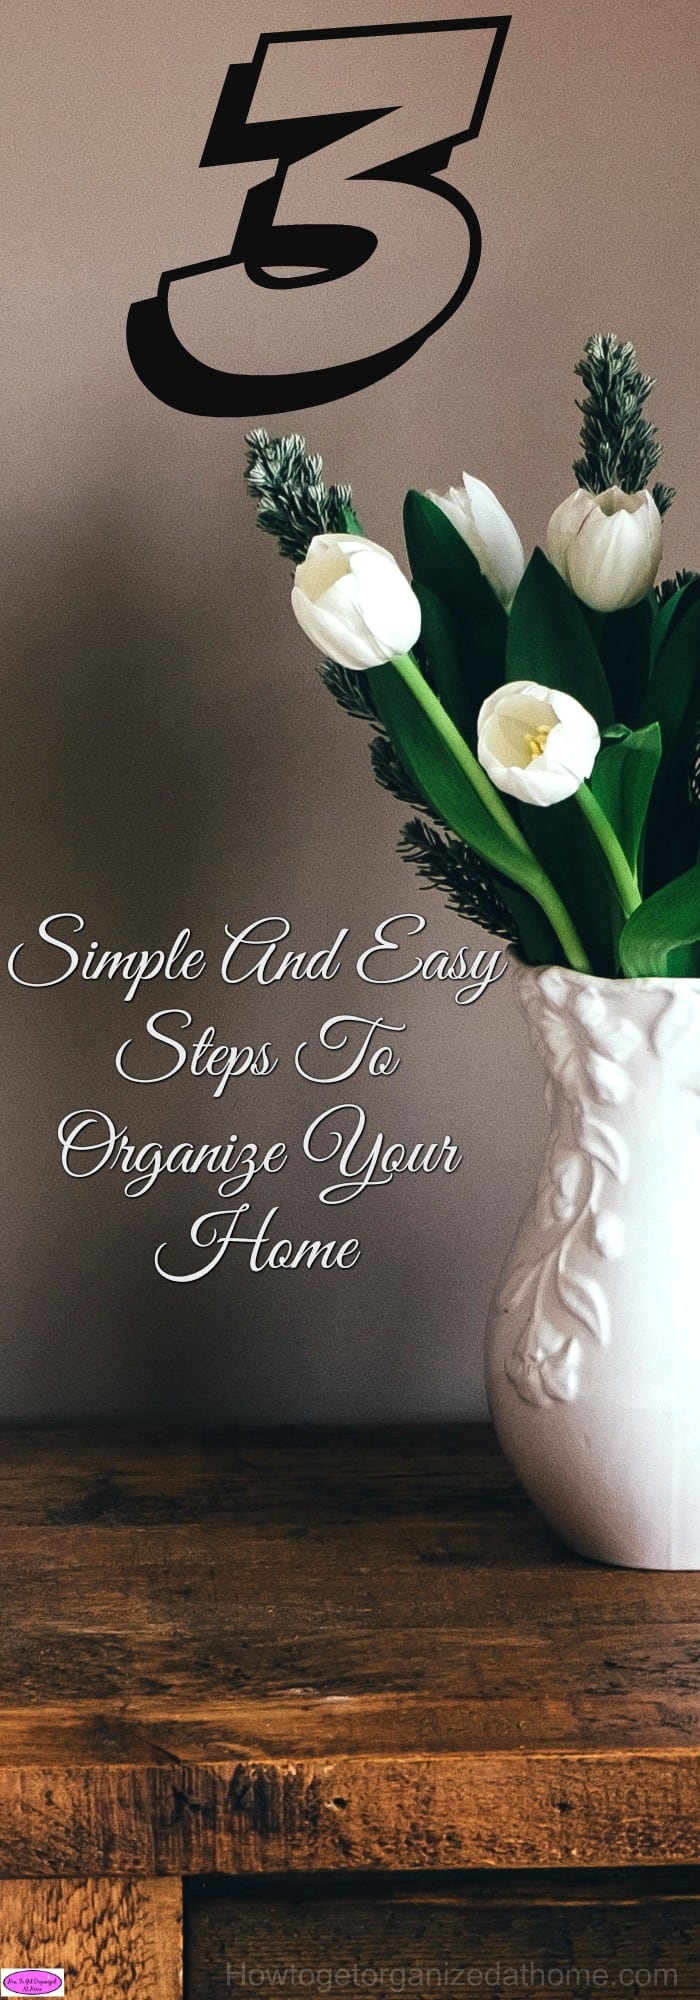 If you are looking for simple and easy steps to organize your home, this is the right place! Just 3 things and you will have an organized space!